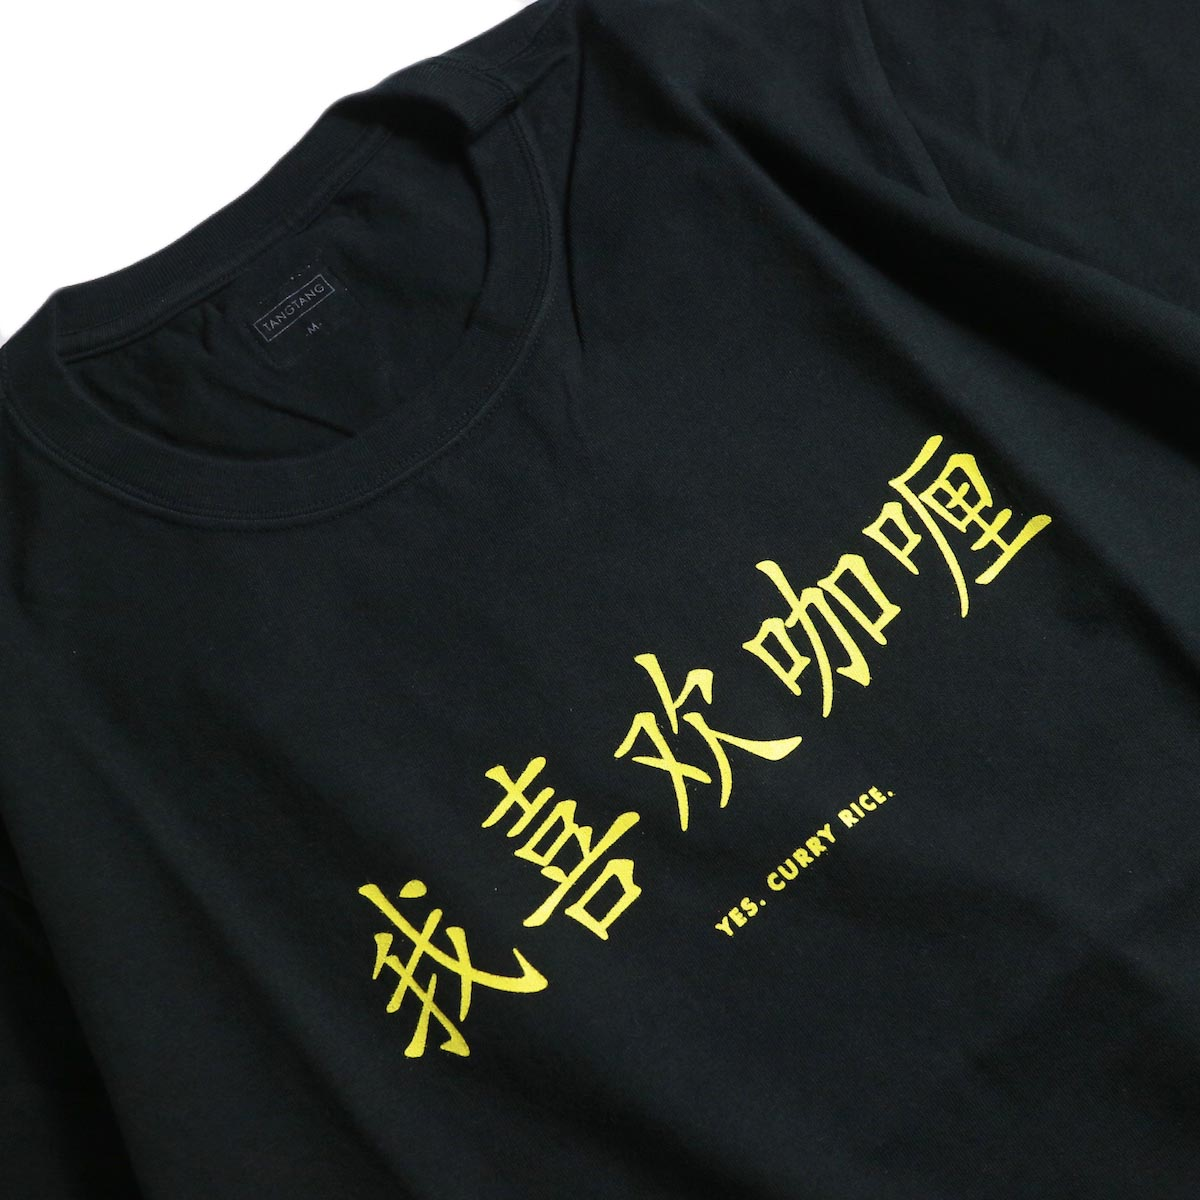 TANGTANG / CURRY -CHINESE (Black)プリント